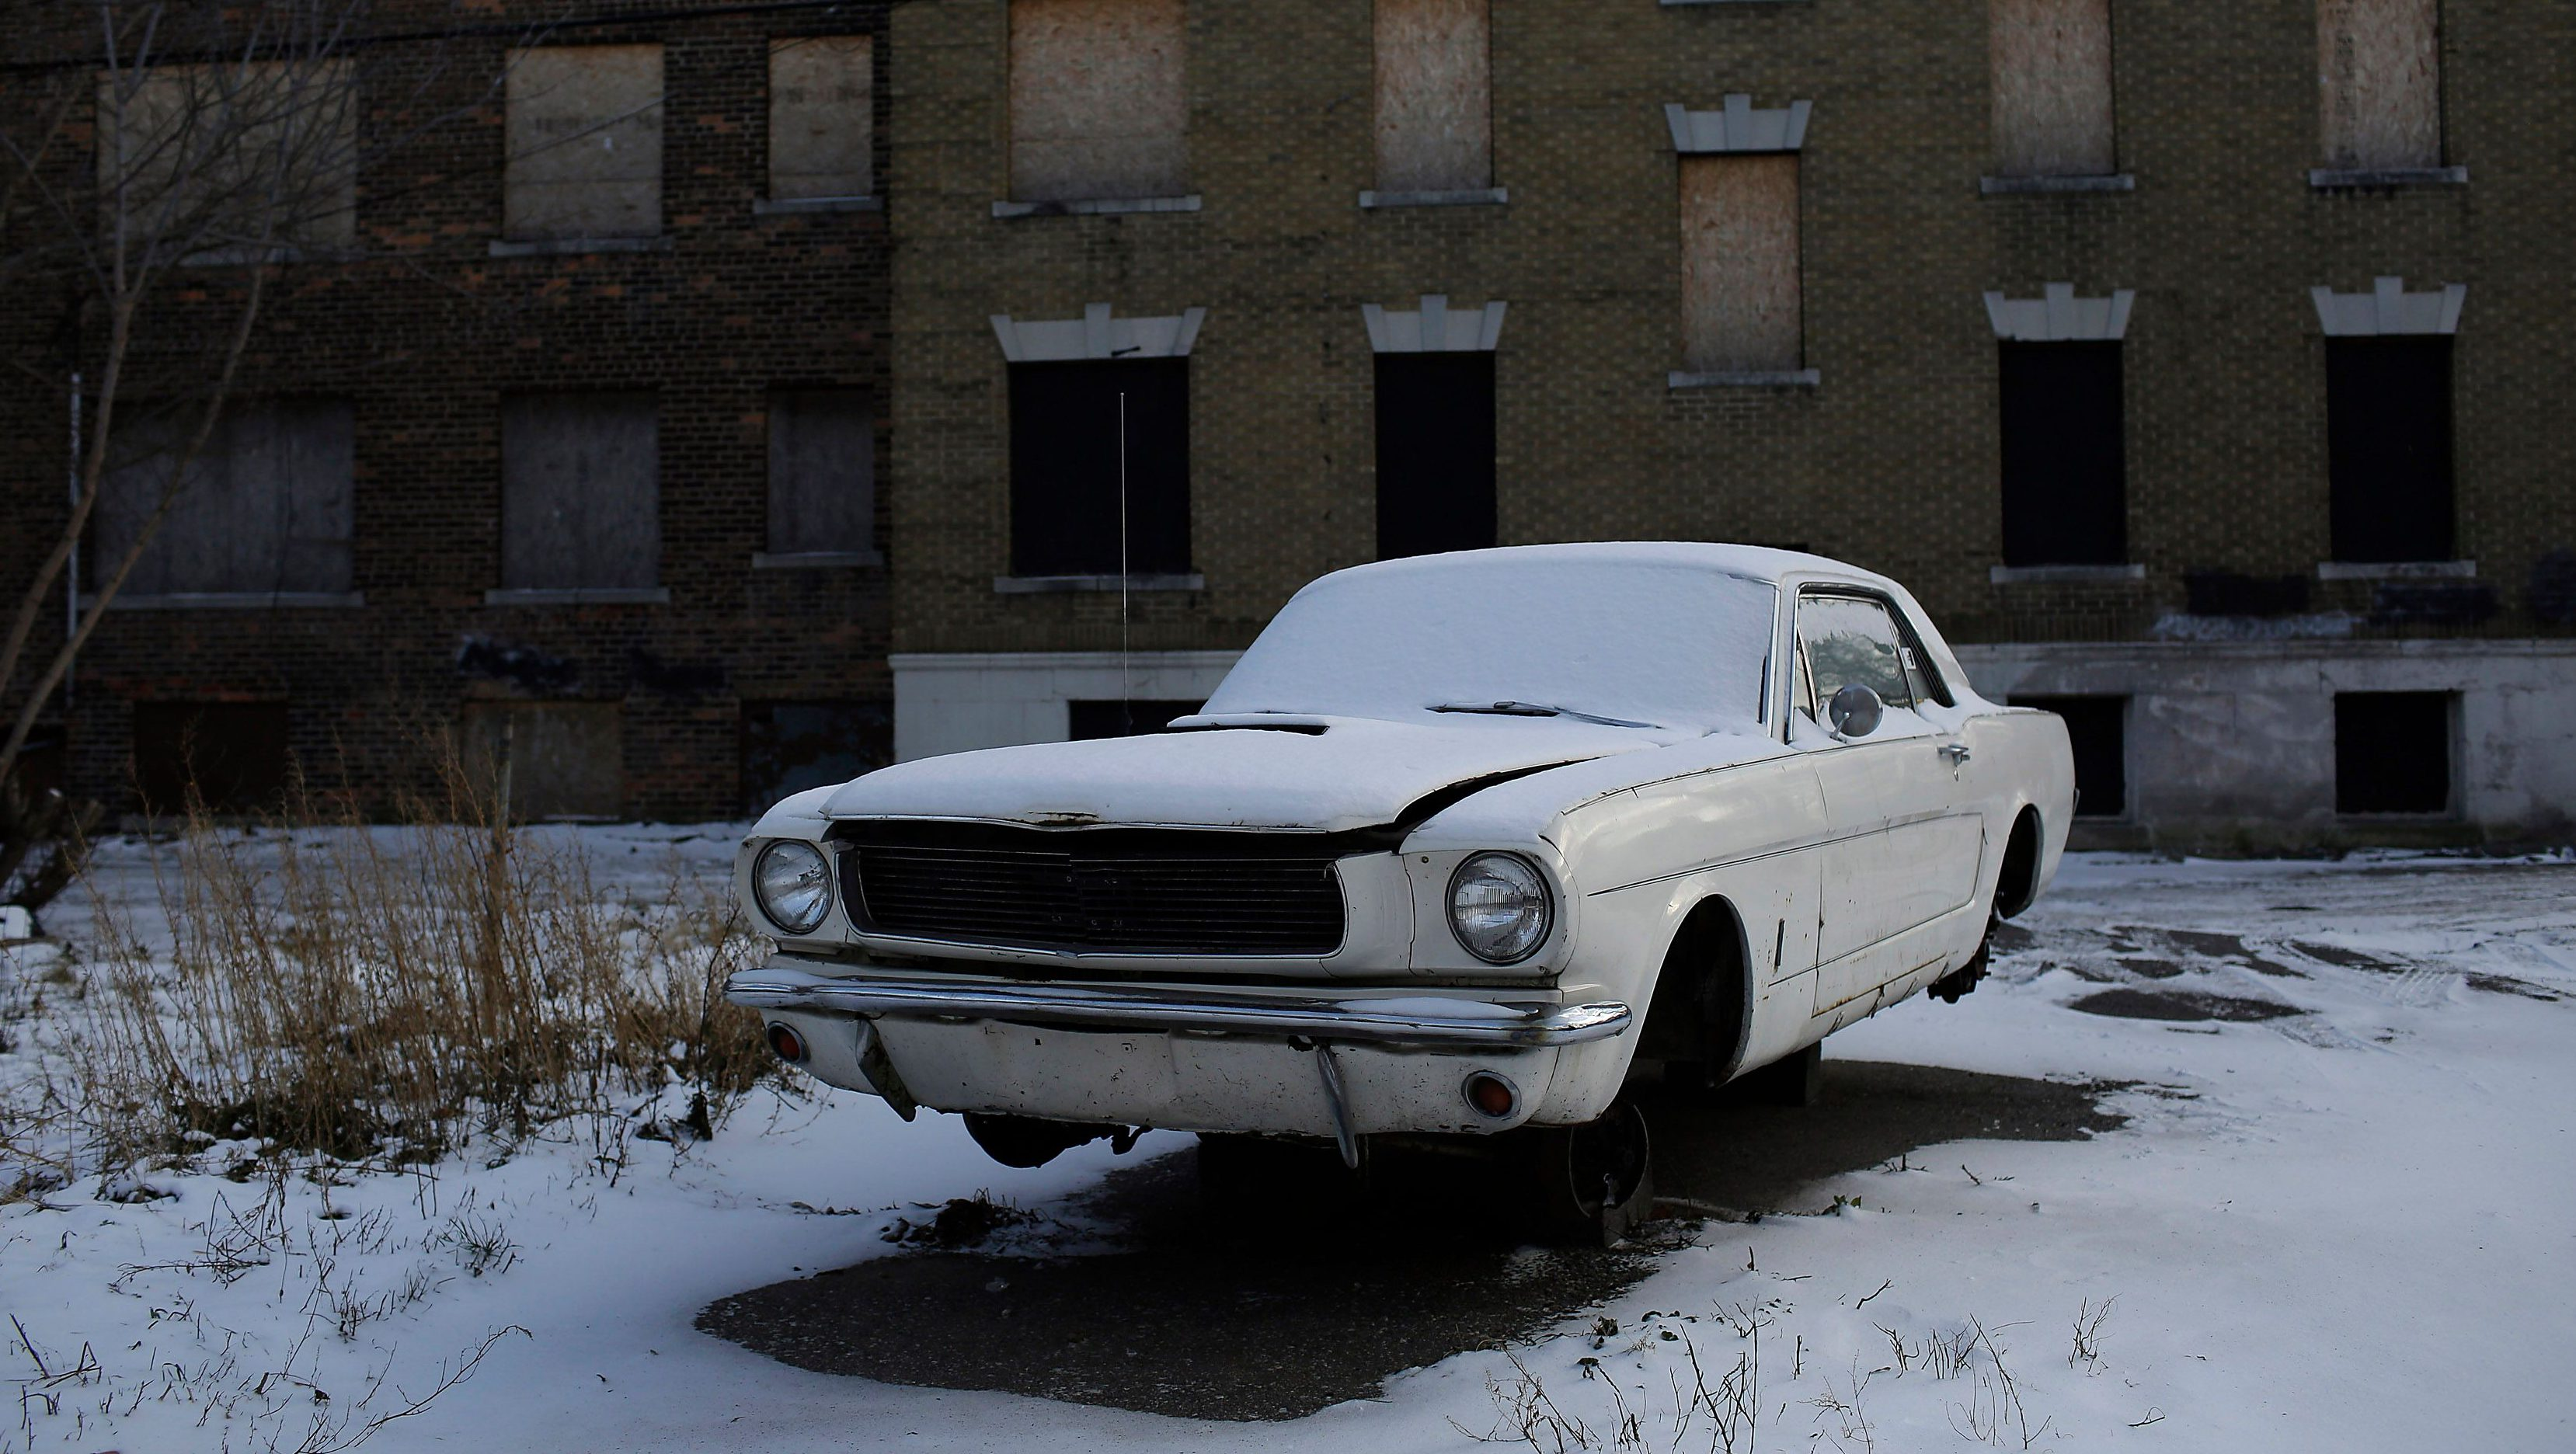 An older model Ford Mustang sits on cinder blocks with missing wheels near an abandoned apartment building in Detroit, Michigan January 7, 2015. Detroit, also known as the Motor City, is the historic hub of automobile manufacturing in the United States. A federal judge in December 2013 formally declared the city bankrupt but it won court approval to exit bankruptcy last November. Once the proud symbol of U.S. industrial strength, Detroit fell on hard times after decades of population loss, rampant debt and financial mismanagement left it struggling to provide basic services to residents. The Detroit car show, formally the North American International Auto Show, is being held for the 26th year and represents the turn in the city's fortune with 2014 being the best year for U.S. car sales since 2006. Reuters photographer Joshua Lott documented old or damaged cars, a common element in a series of cityscapes in the former automobile industry giant. REUTERS/Joshua Lott (UNITED STATES - Tags: TRANSPORT CITYSCAPE SOCIETY BUSINESS TPX IMAGES OF THE DAY) ATTENTION EDITORS: PICTURE 01 OF 16 FOR WIDER IMAGE PACKAGE 'WRECKED IN DETROIT' TO FIND ALL IMAGES SEARCH 'CITYSCAPES LOTT' - LM2EB1D0JVA01